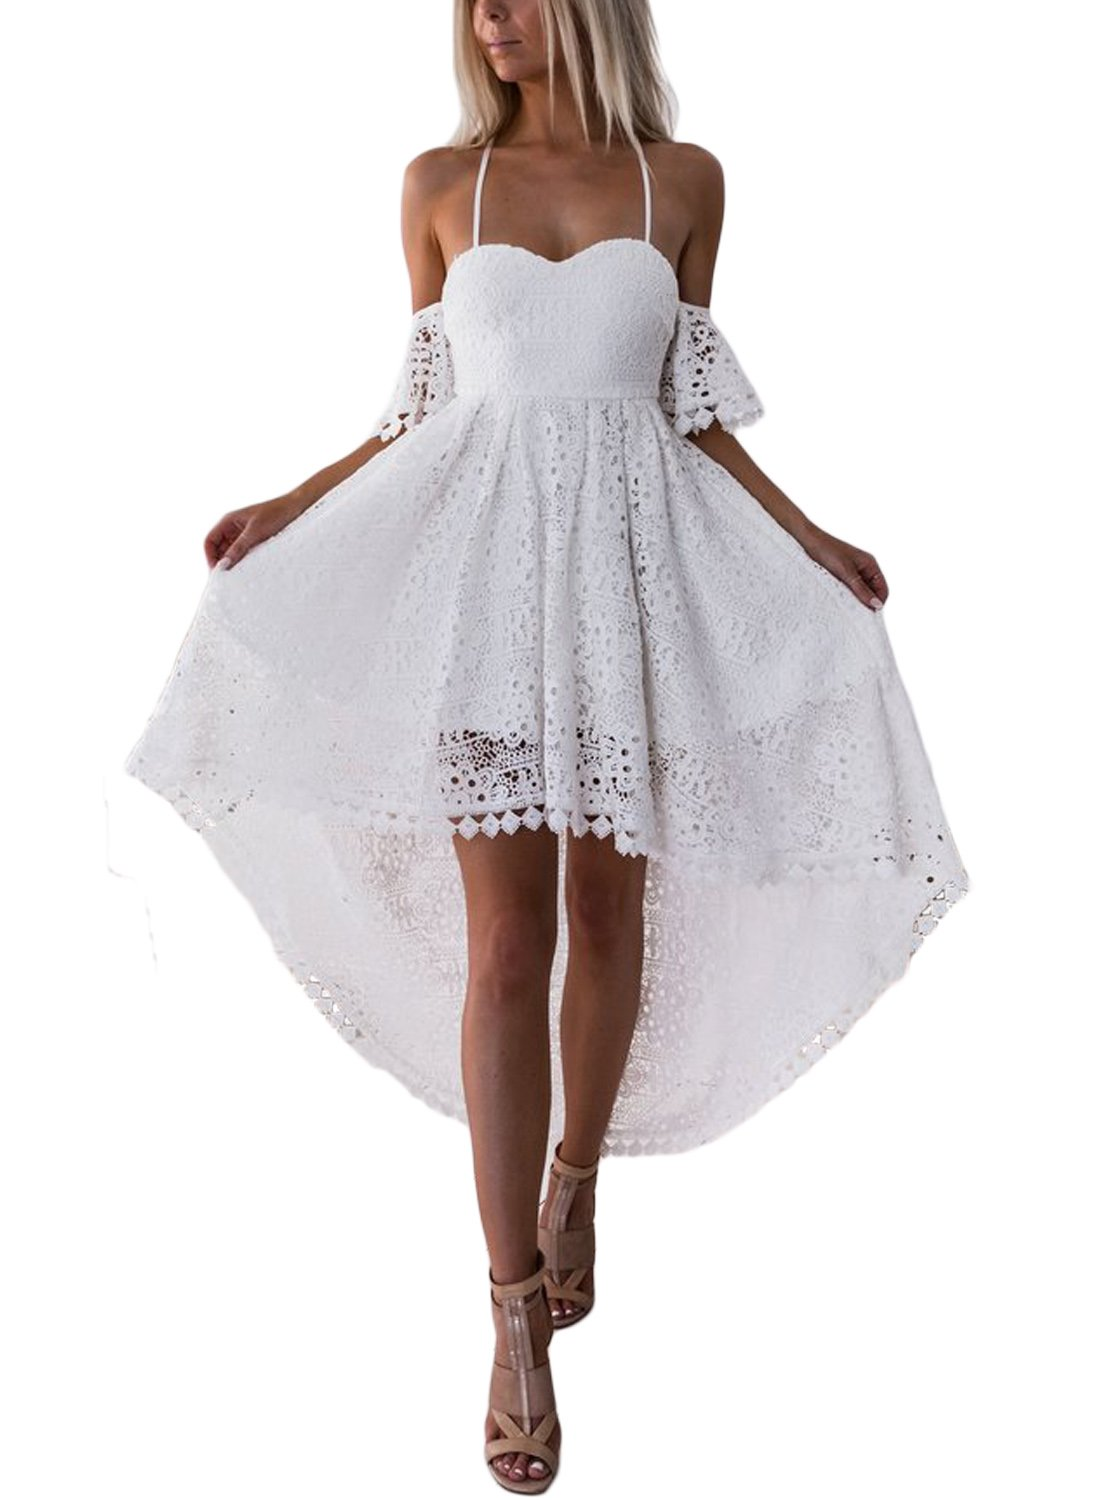 AlvaQ Women's Ladies Plus Size Heart Neck Short Sleeve Spaghetti Strap Cold Shouler Lace Hollow High Low Cocktail Party Dress Bridesmaid Wedding Dresses Large White